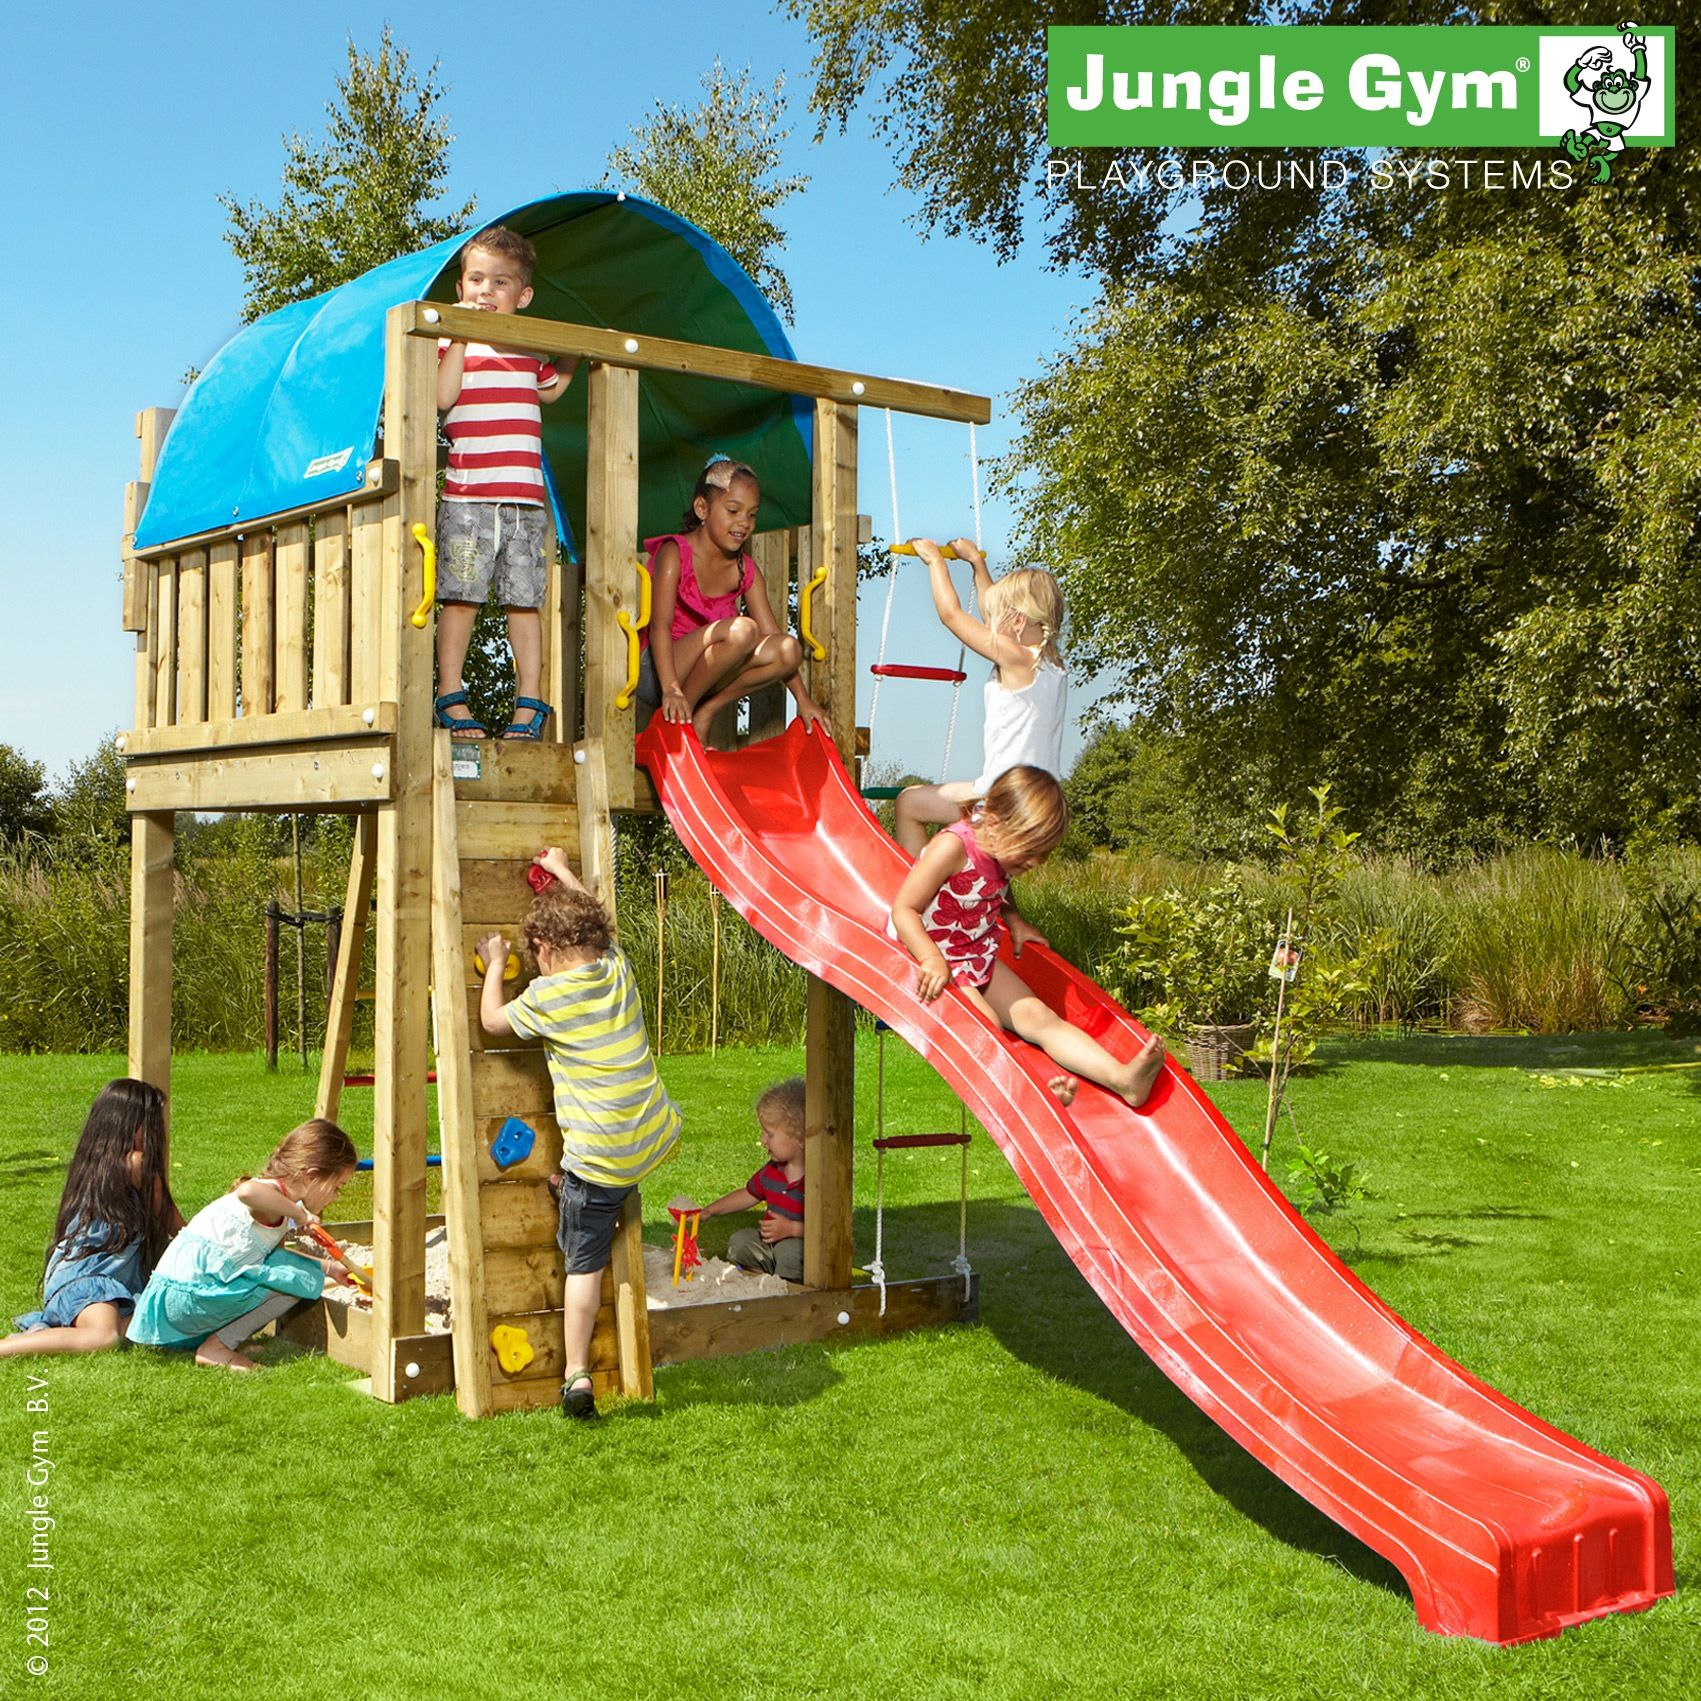 Jungle Villa A large outdoor play equipment with a climbing